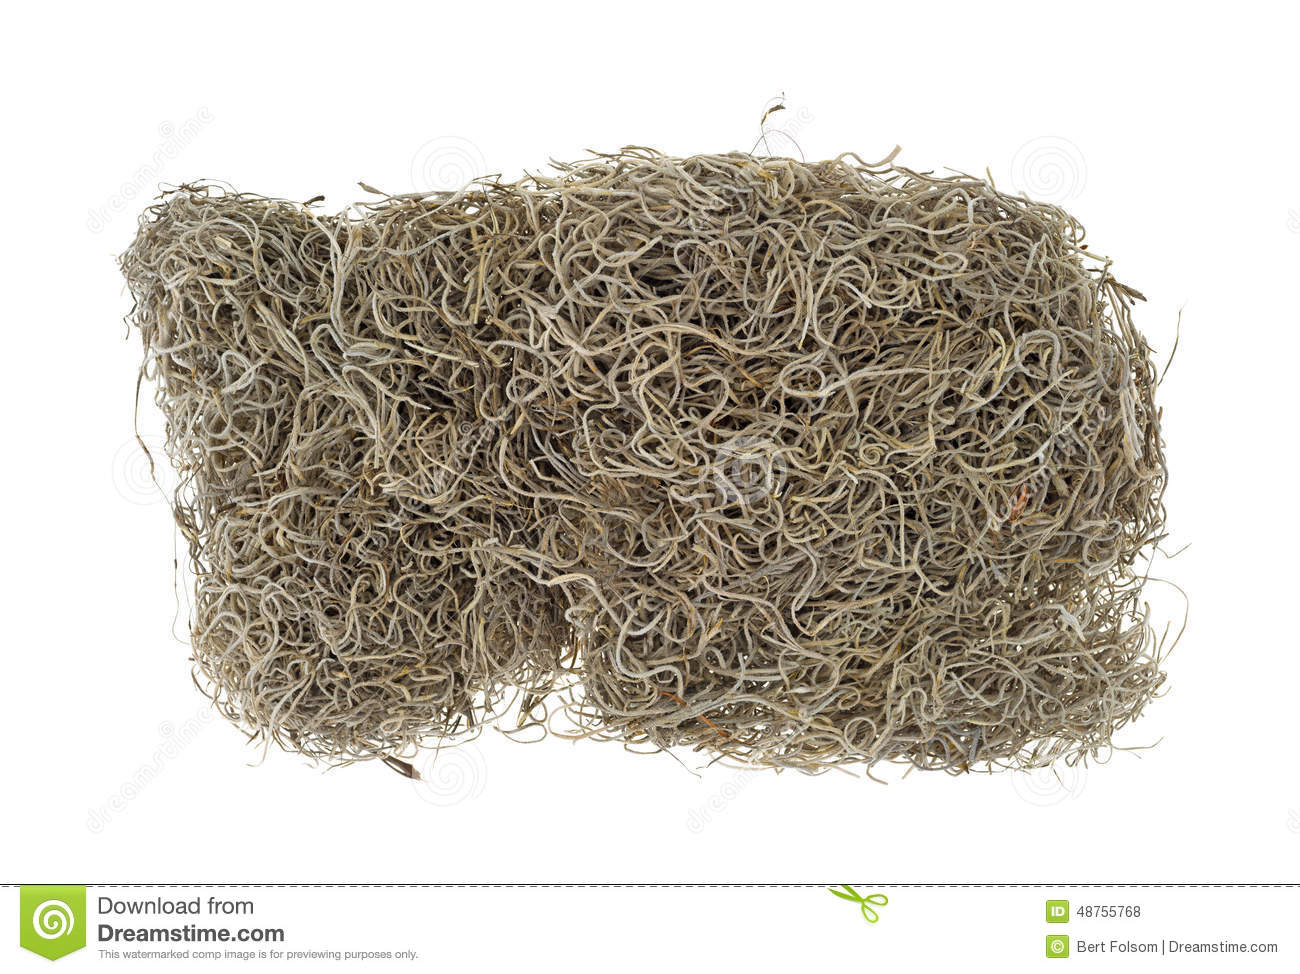 Spanish moss for crafts - Block Of Spanish Moss For Crafts Stock Photo